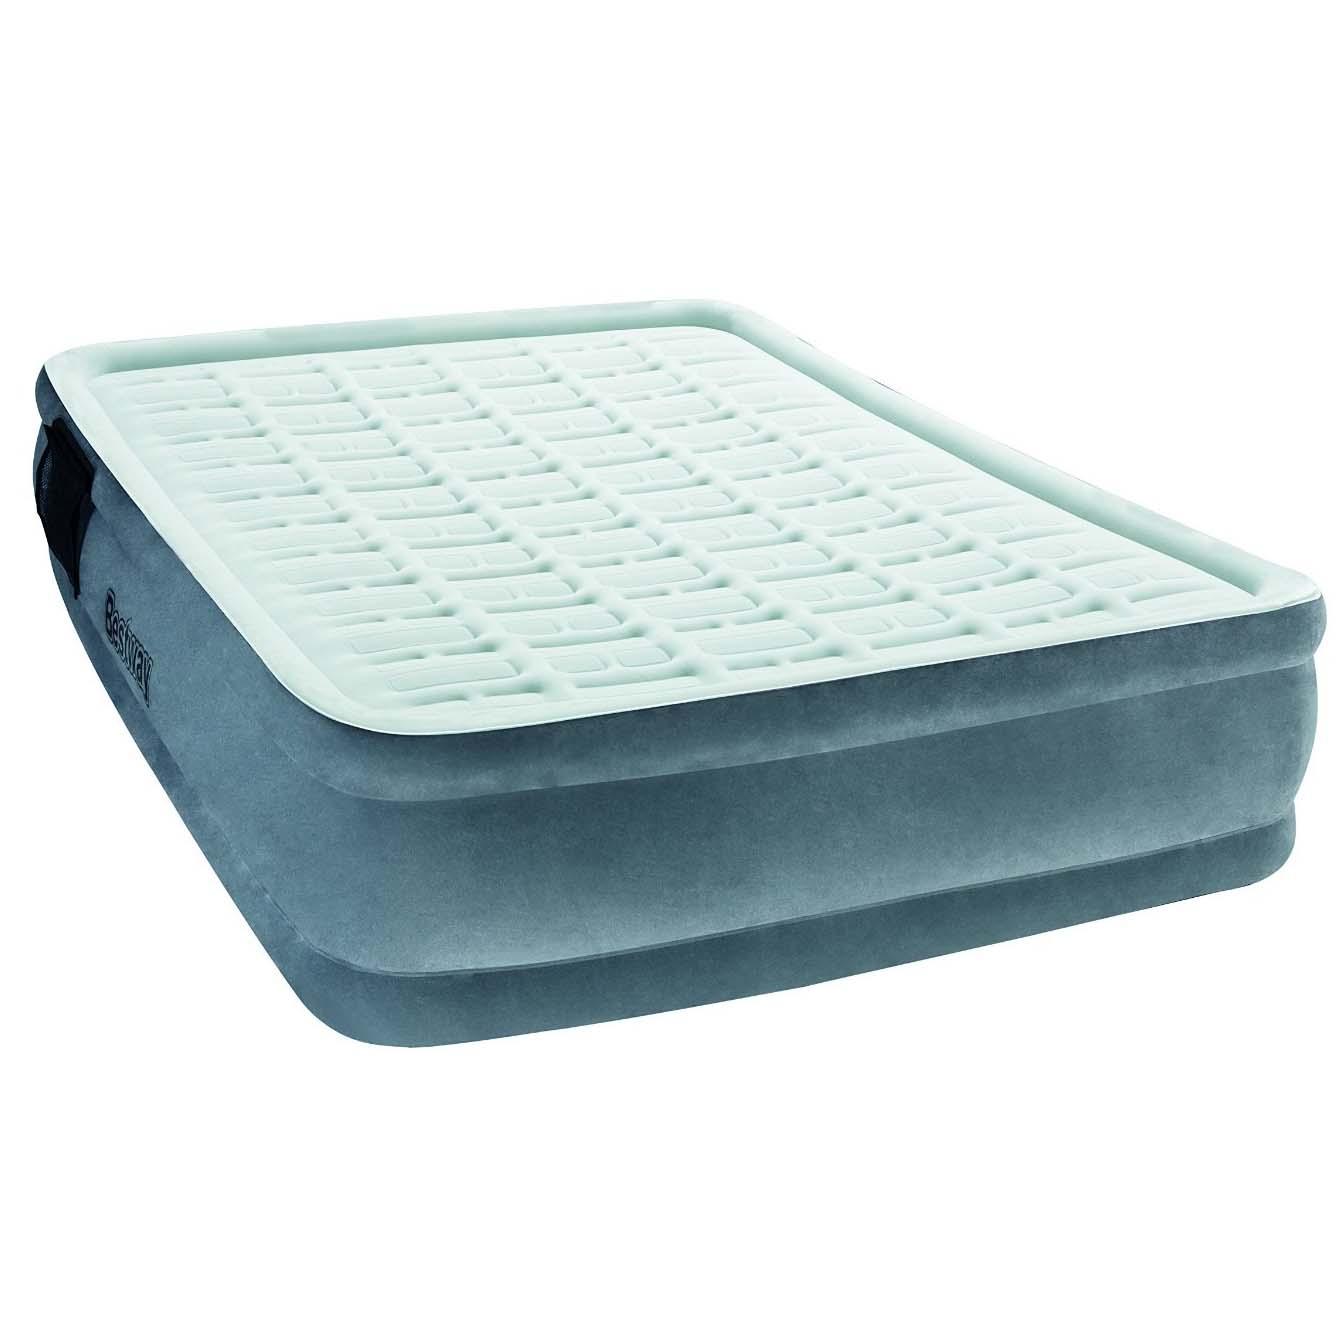 Надувная кровать Comfort Cell TechTM Premiere Plus Elevated Airbed(Queen) 203х152х43 см со встр.нас, BestWay, 67560 BW